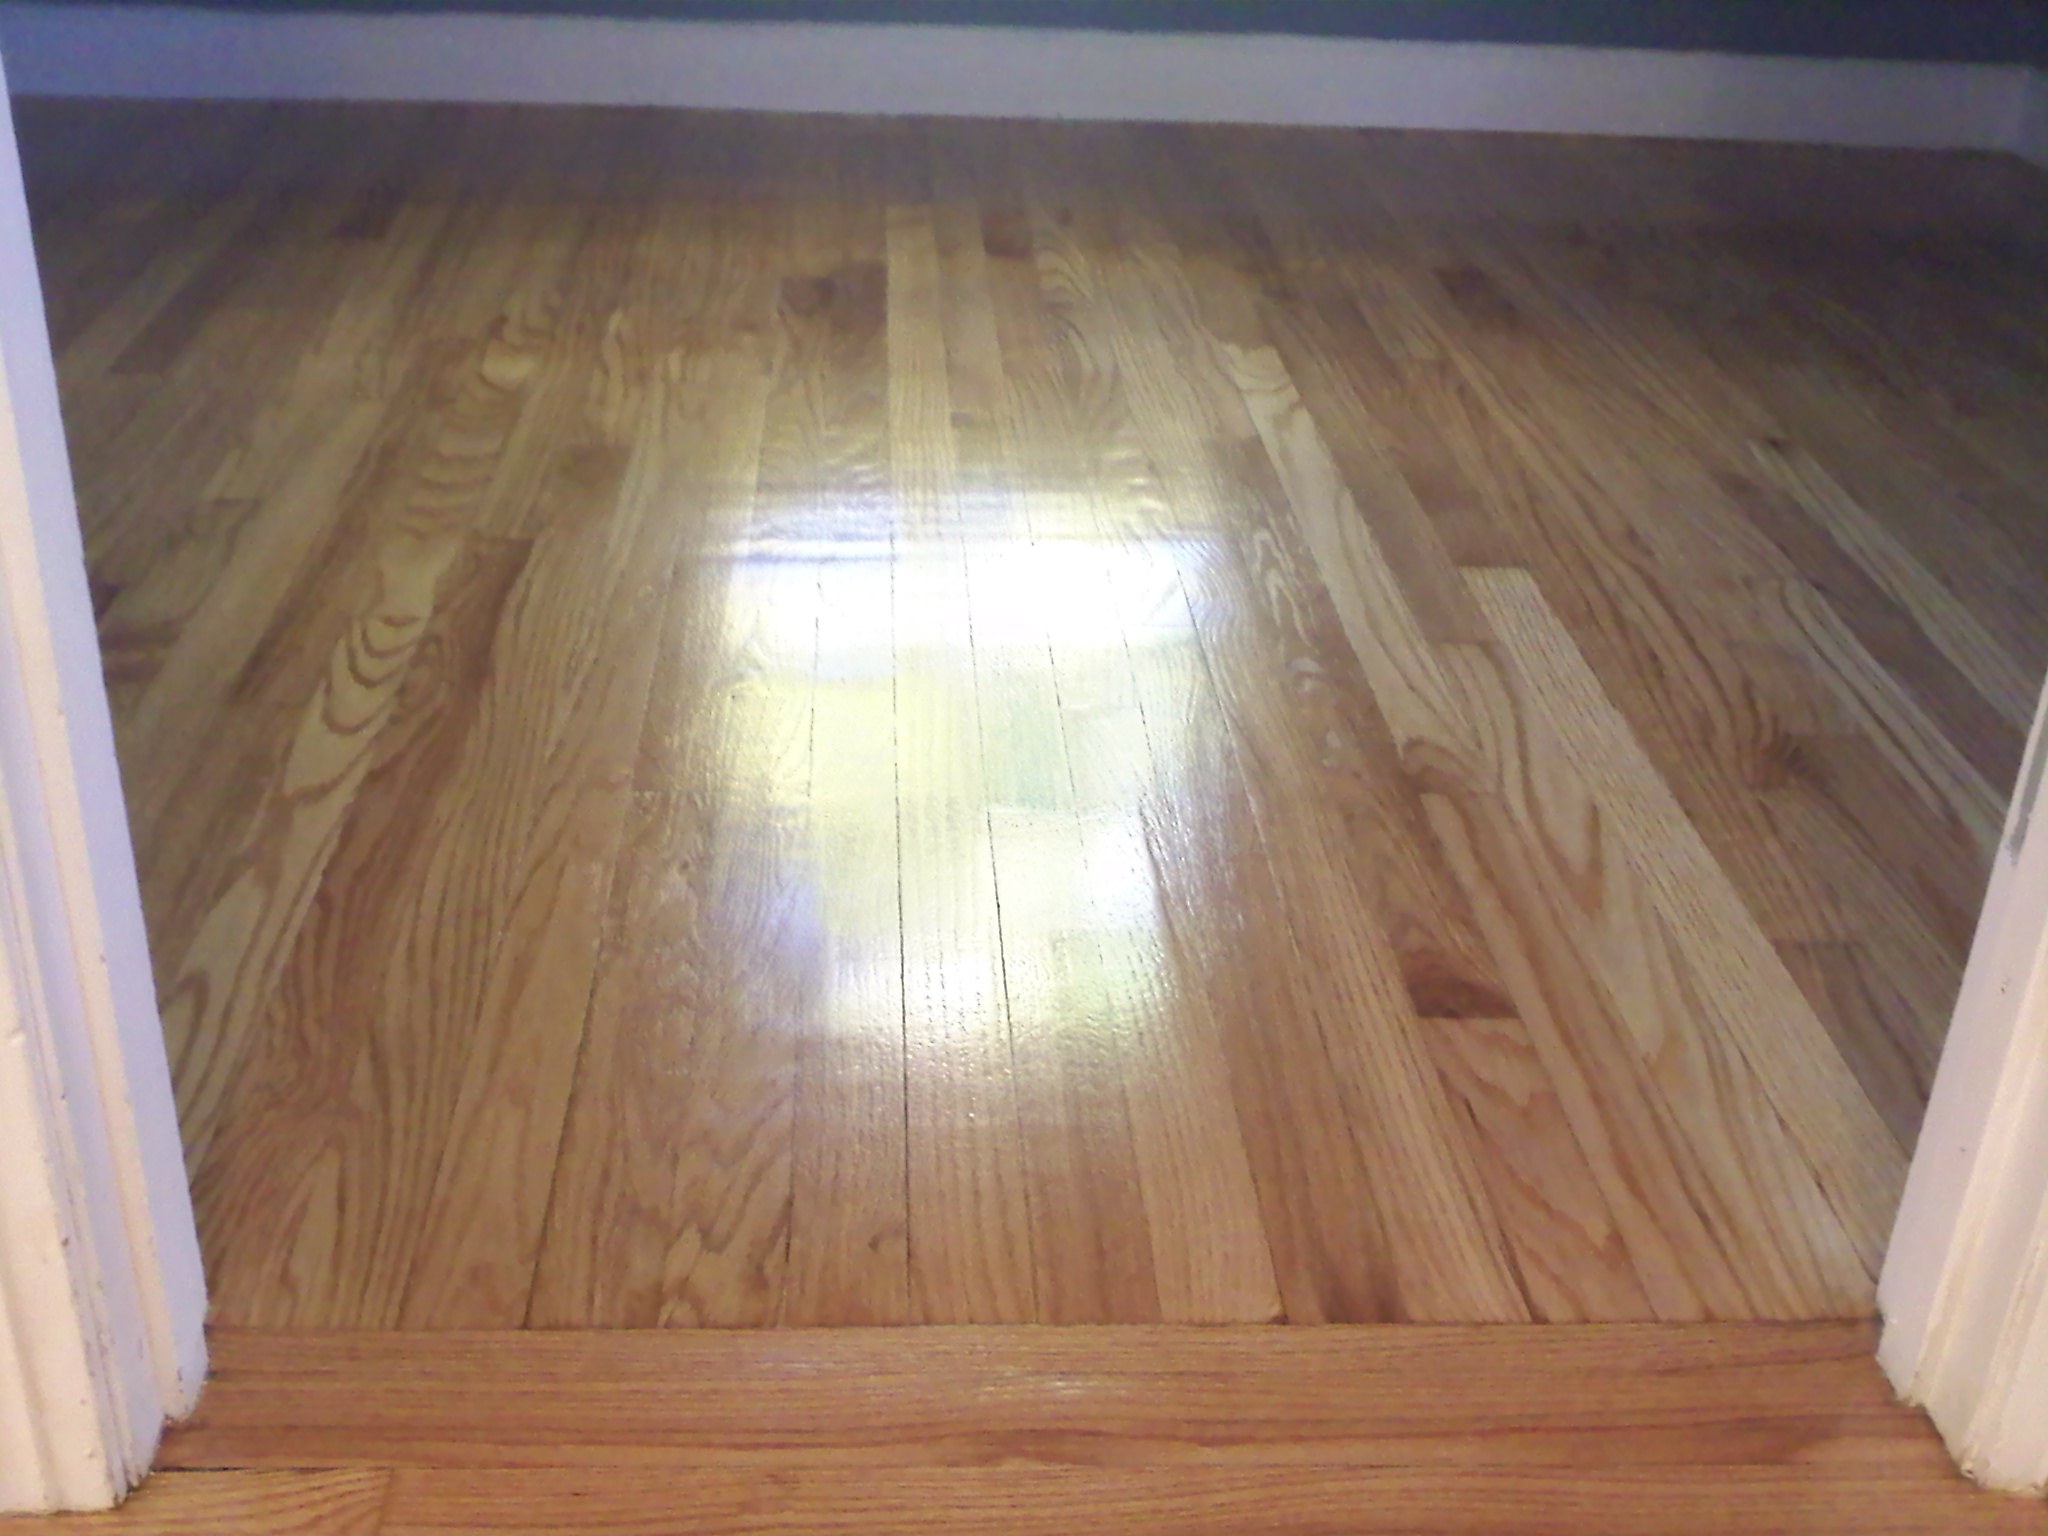 Refinished wood floors wavy hardwood floors phone refinishing refinished wood floors wavy solutioingenieria Gallery